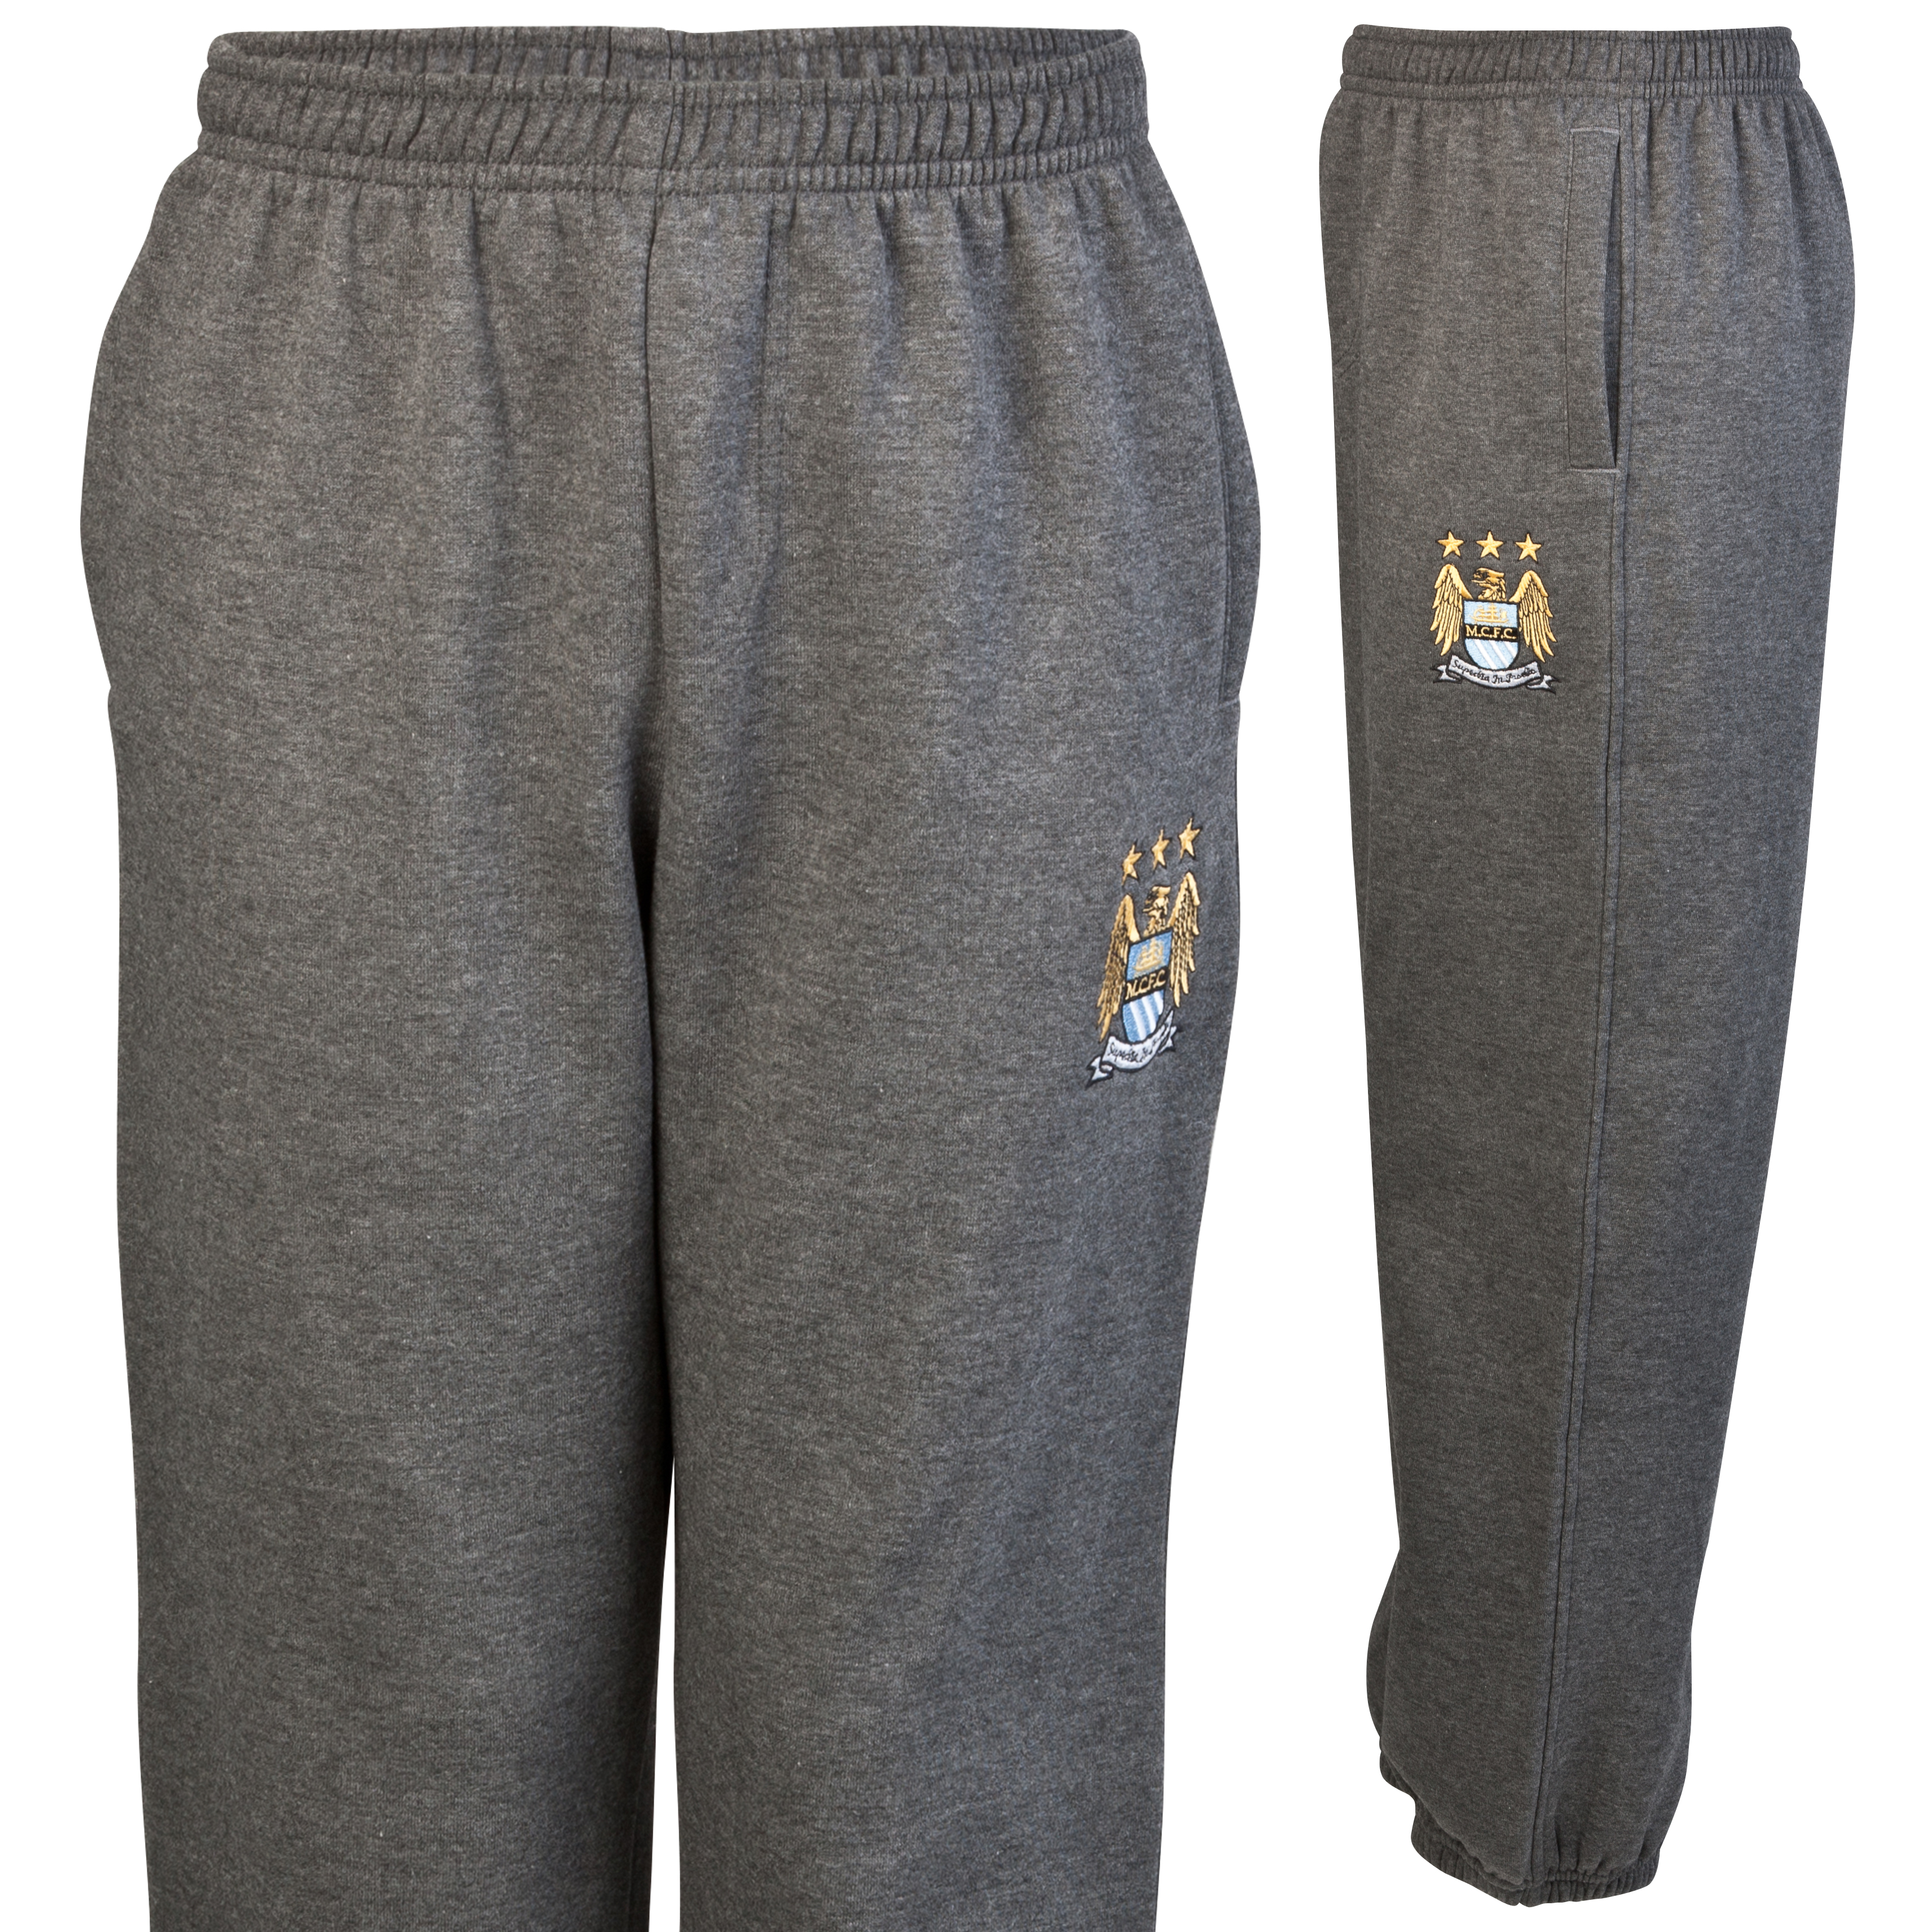 Manchester City Essential Jungle Jog Pants - Charcoal Marl - Older Boys